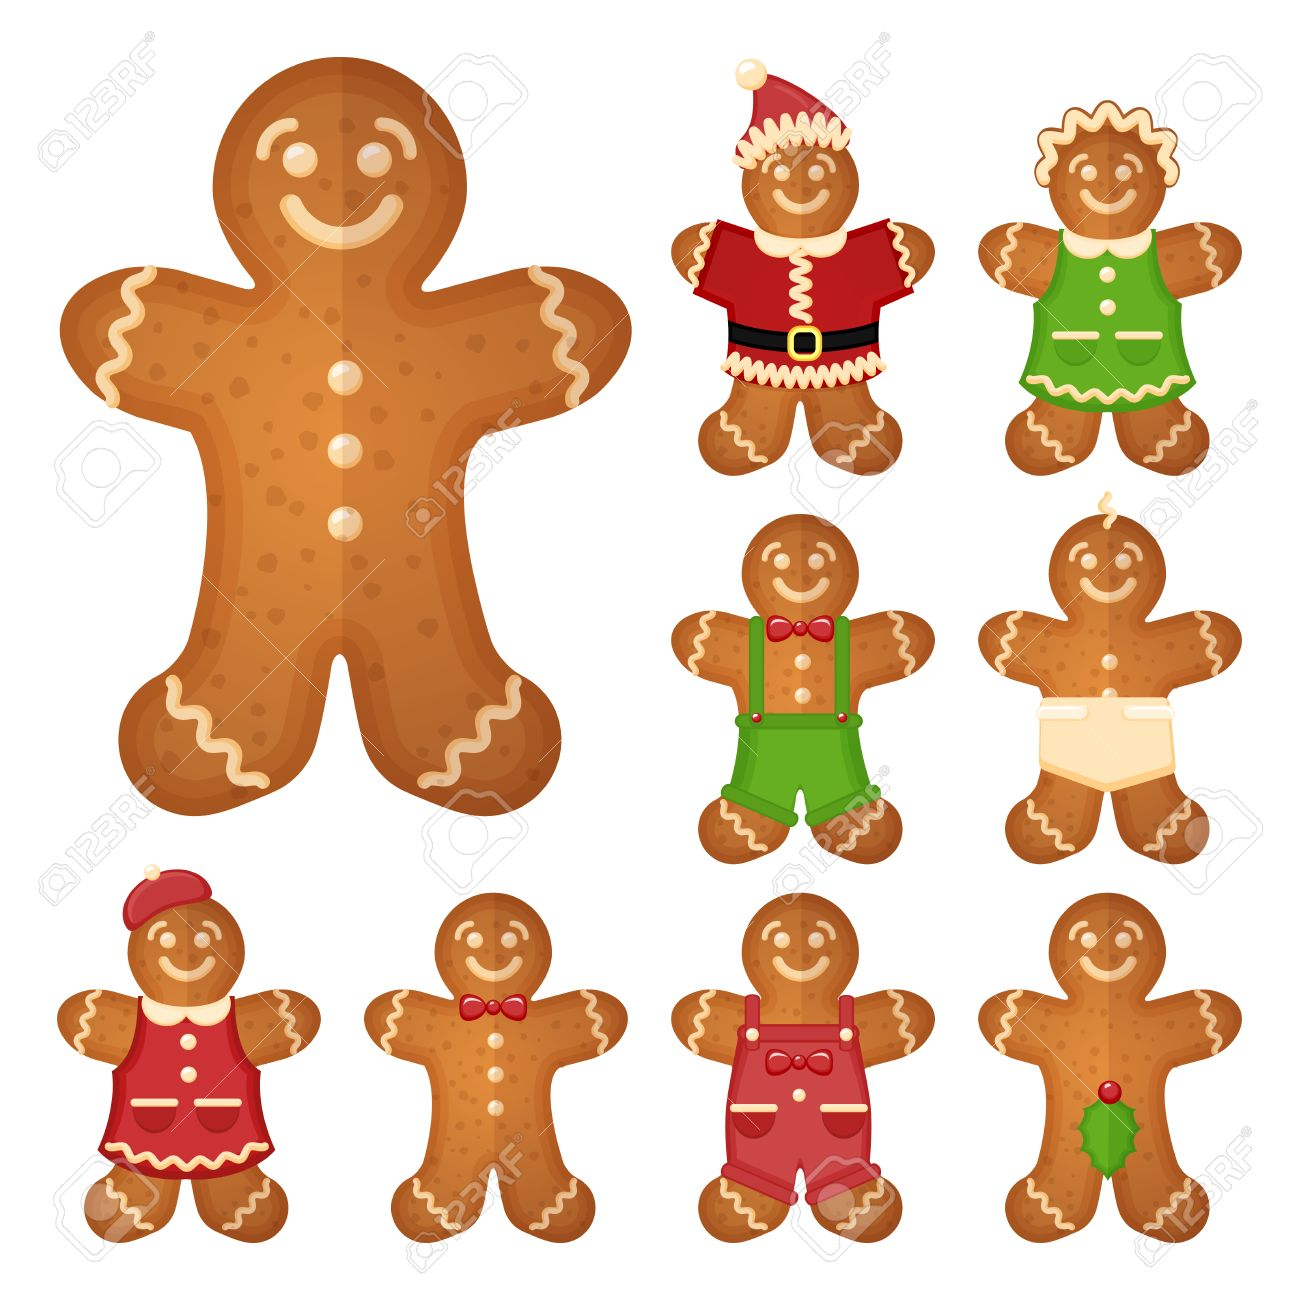 Gingerbread Man Christmas Cookie Holiday Sweet Food Traditional